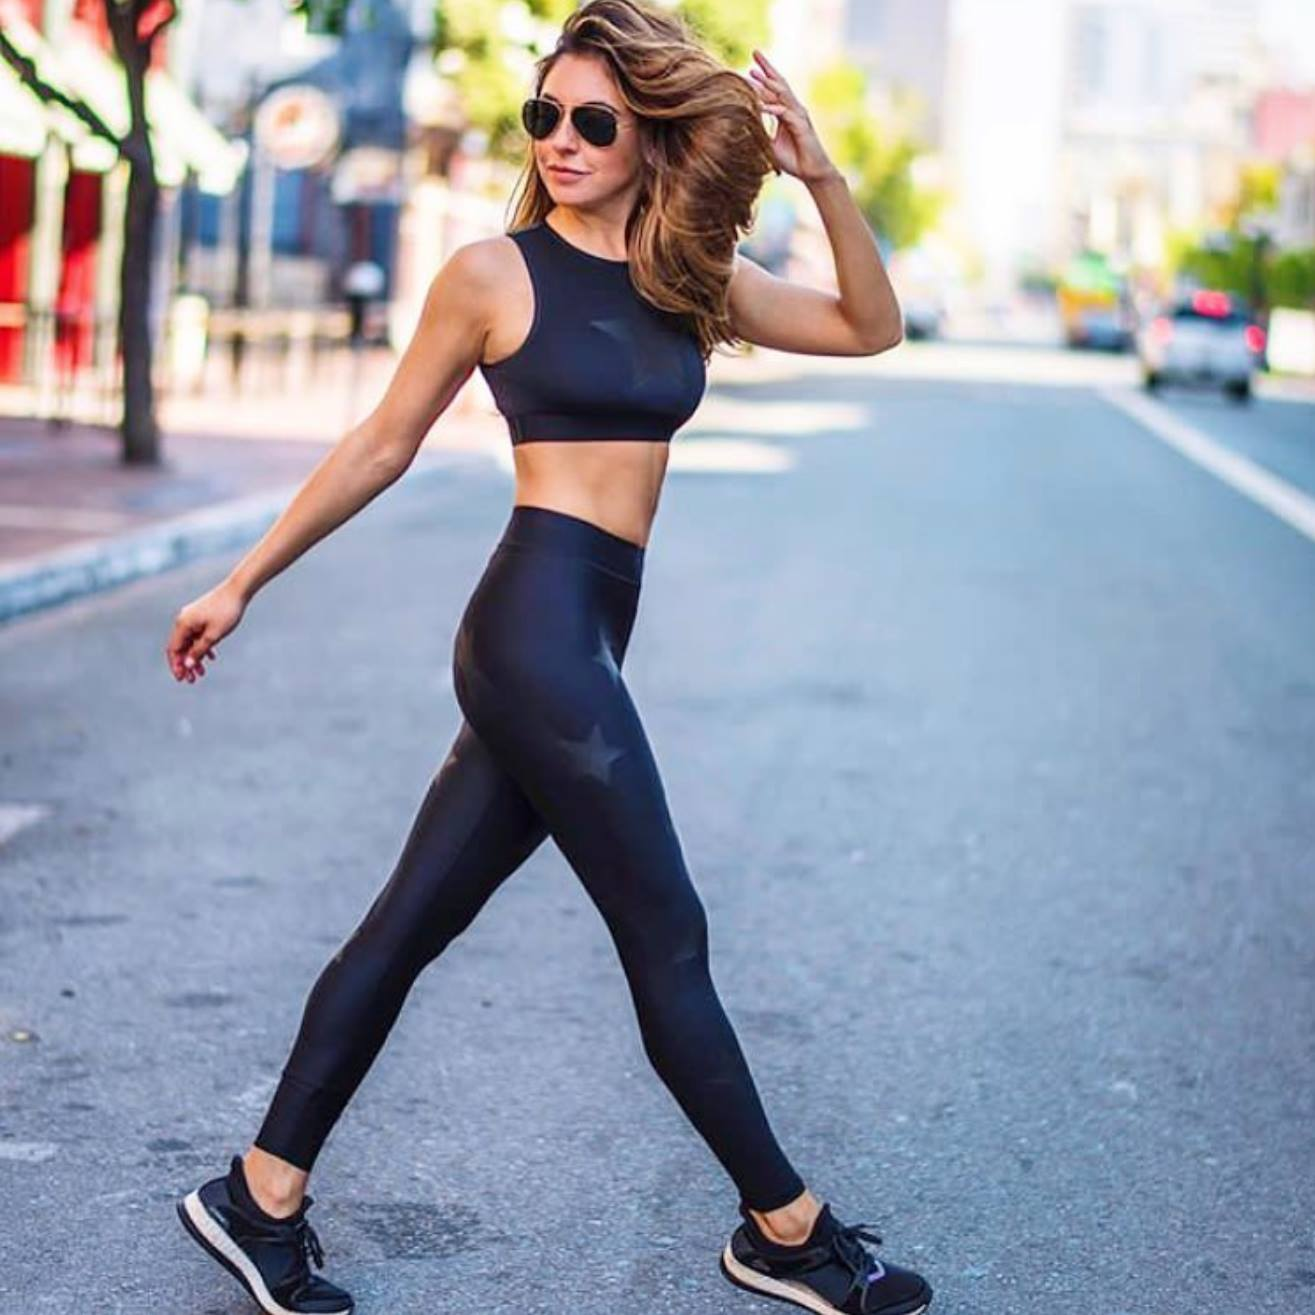 Shop for the bestselling lux knockout leggings by Ultracor at The Sweatbar